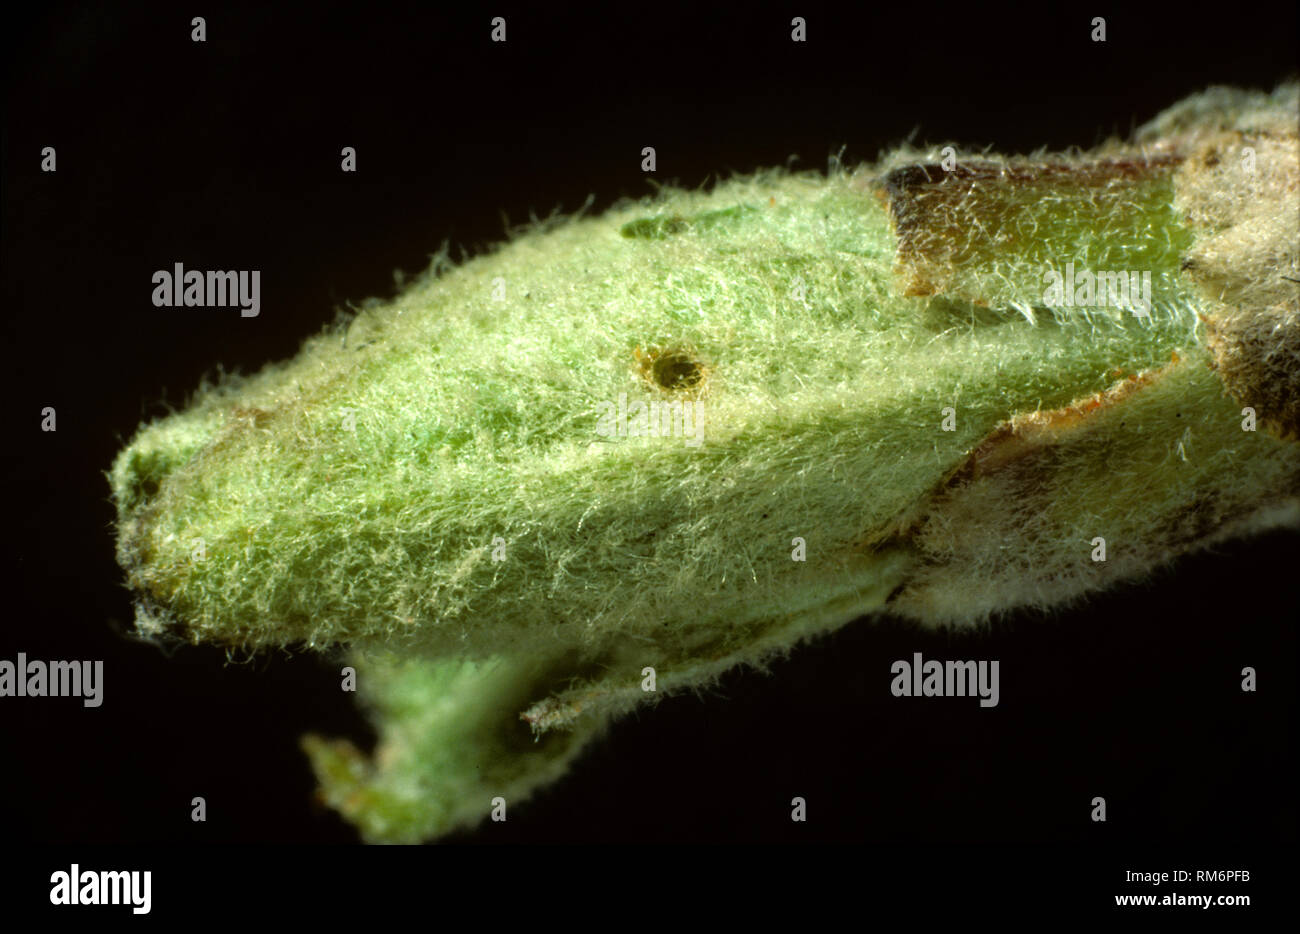 Damage to apple leaf bud by a young winter moth, Operophtera brumata, caterpillar as it develops - Stock Image